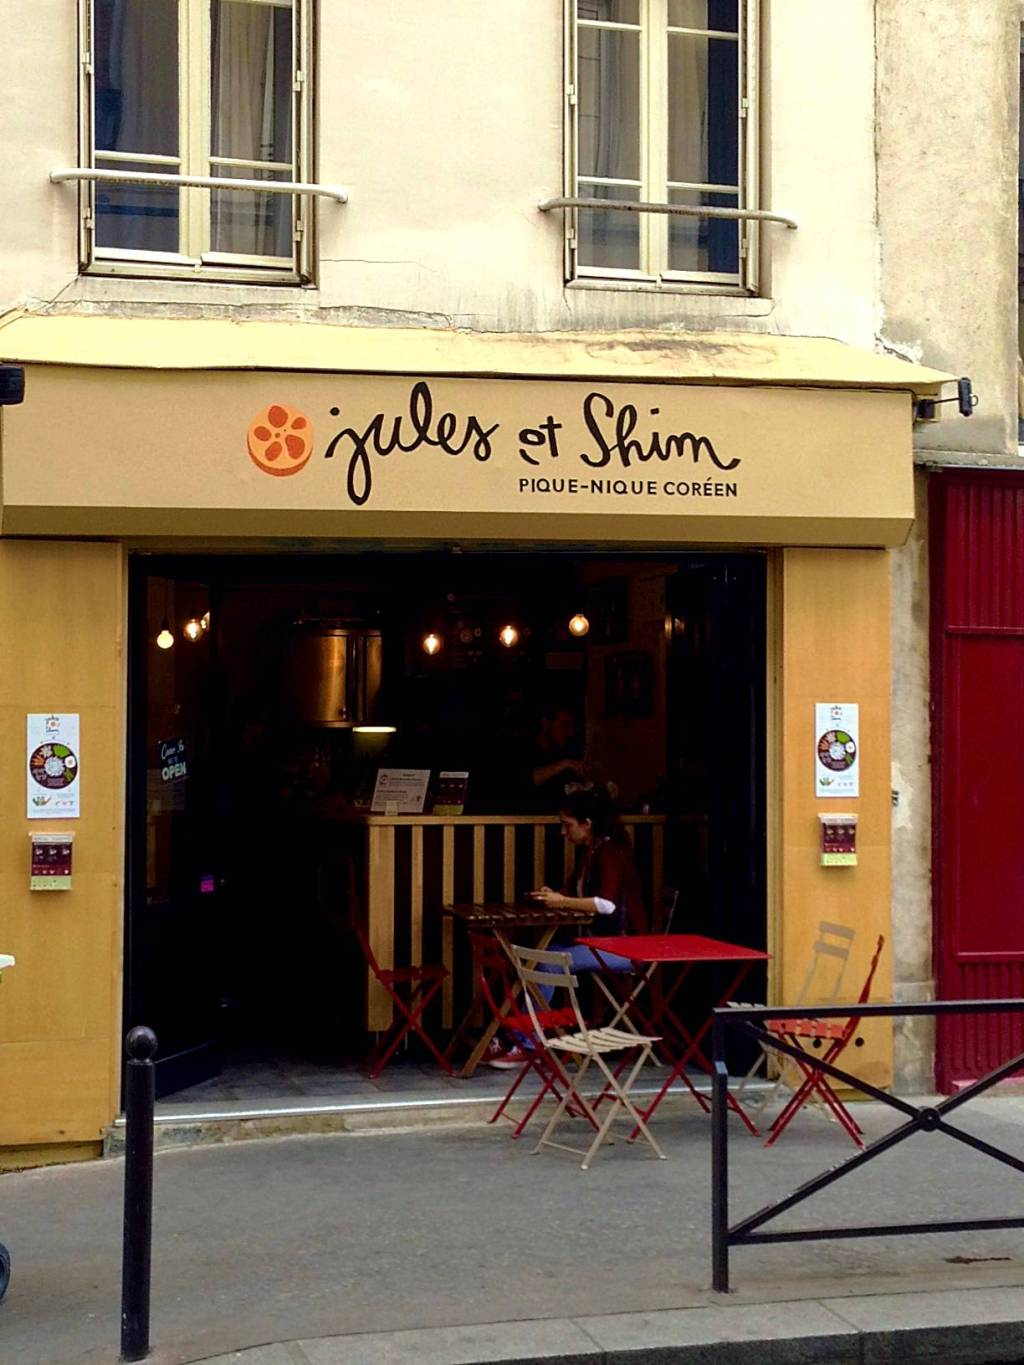 How To See Paris in 4 Days: Jules et Shim (bibimbap), Canal Saint-Martin, Paris